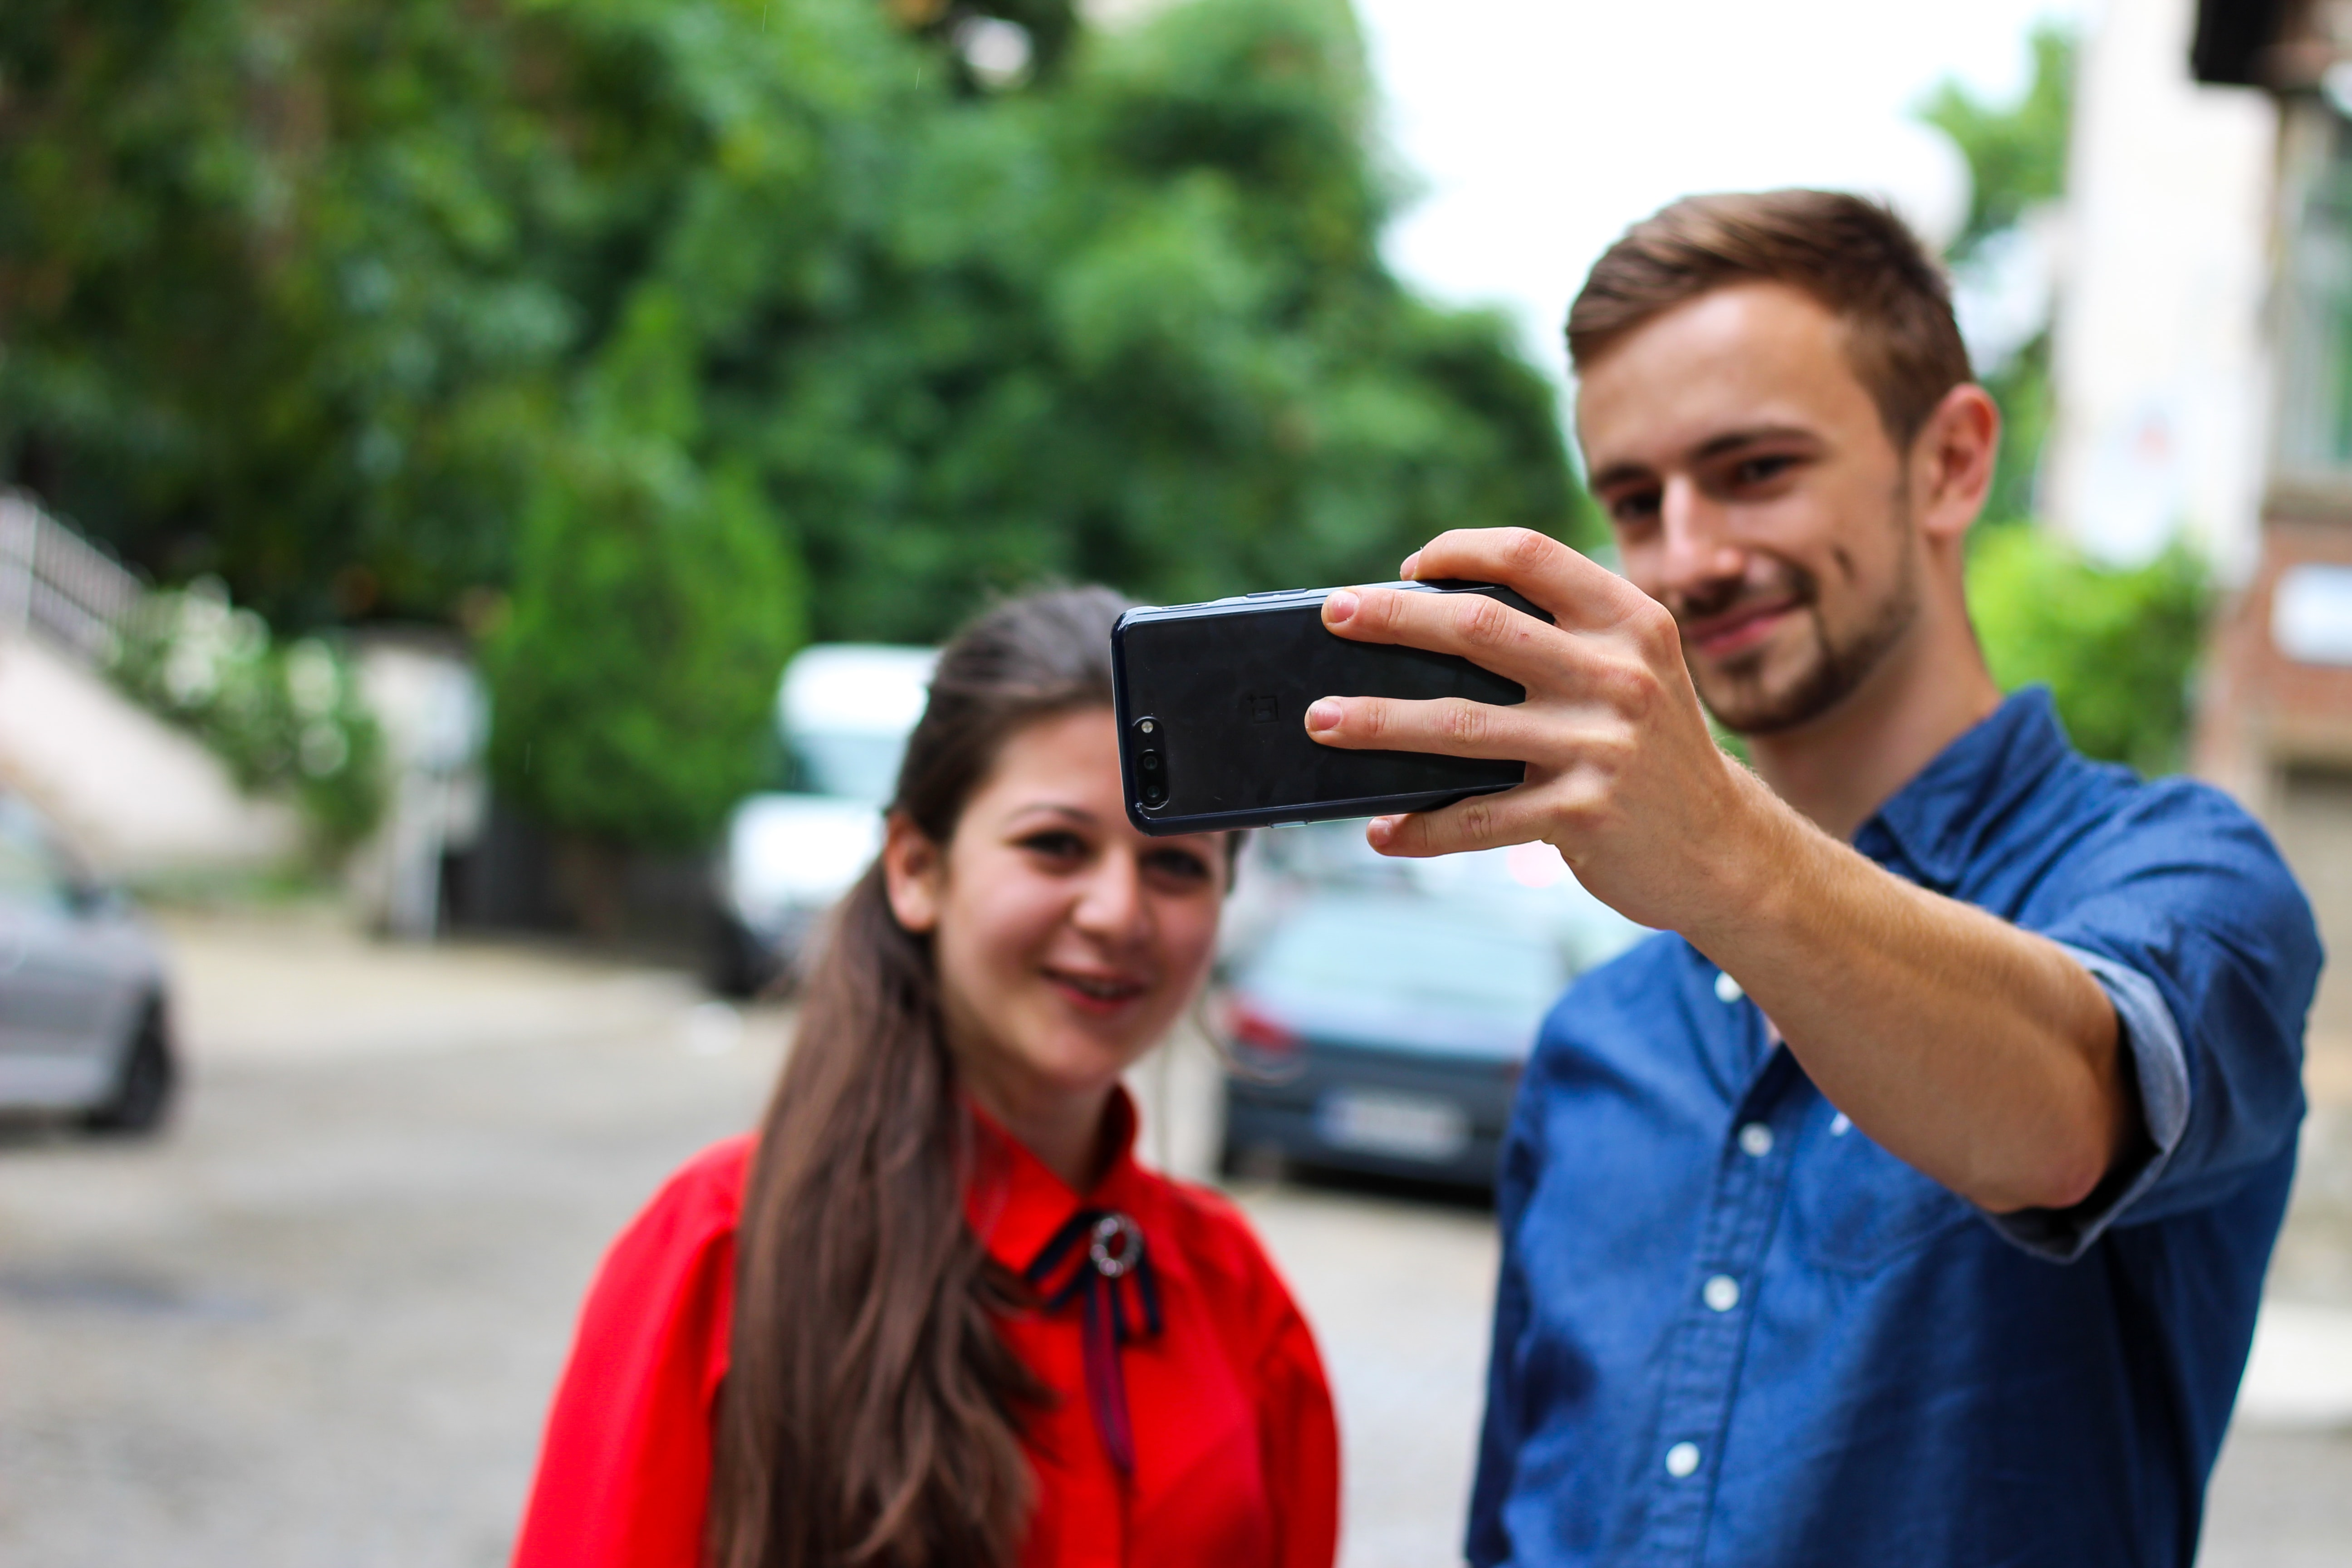 man standing beside woman holding smartphone